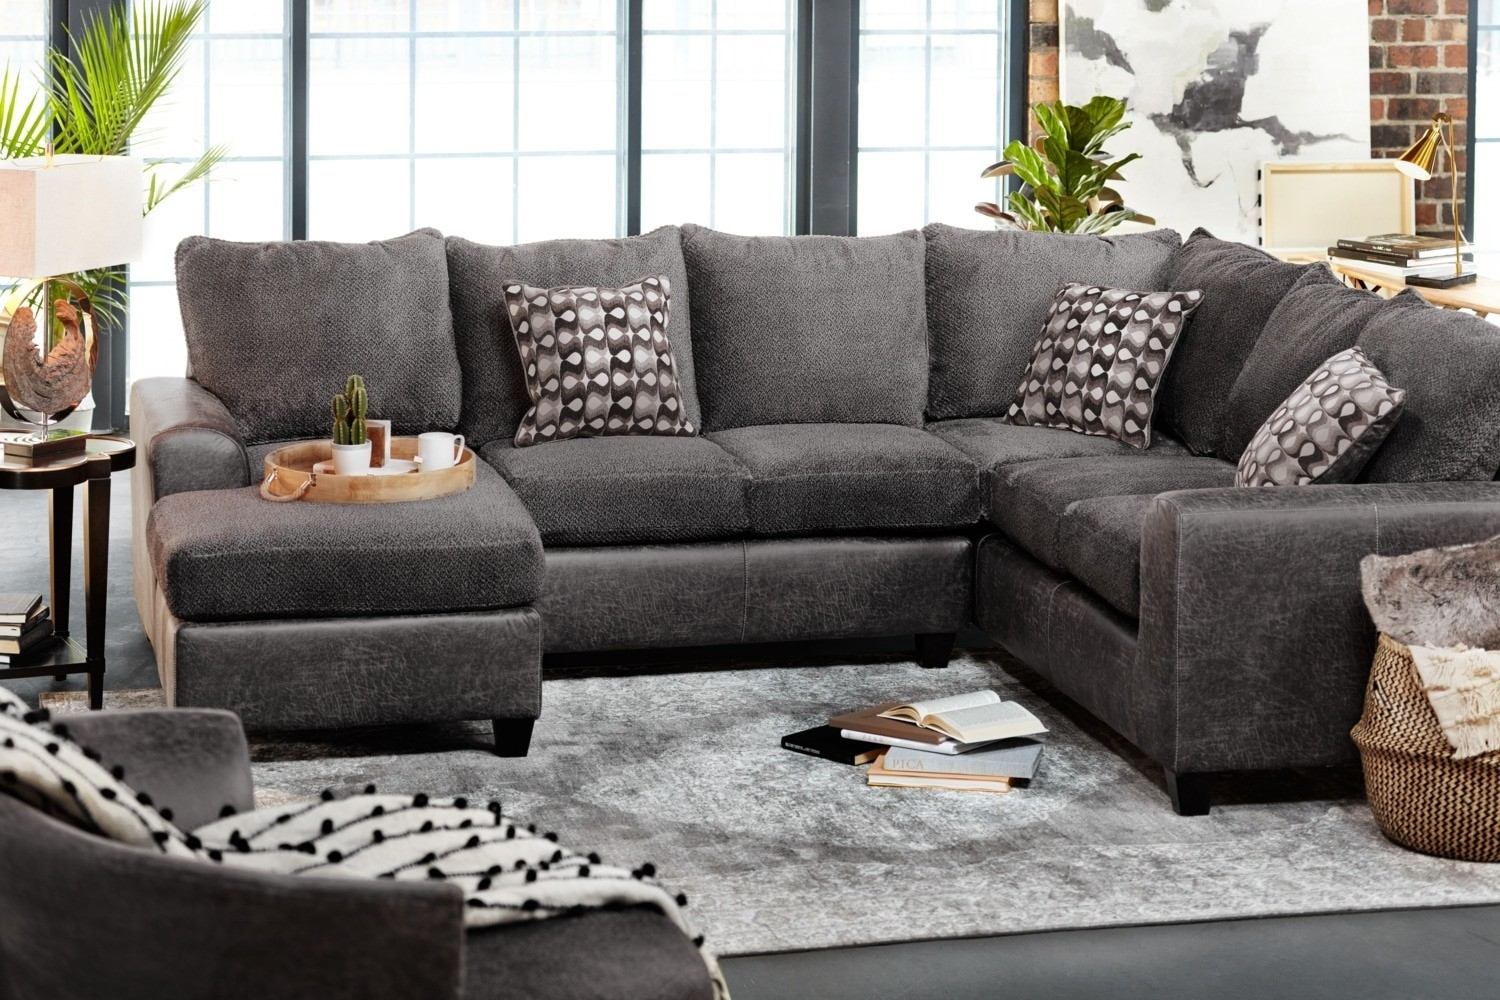 3 Piece Sectional Malbry Point W Laf Chaise Living Spaces 223533 0 with regard to Malbry Point 3 Piece Sectionals With Laf Chaise